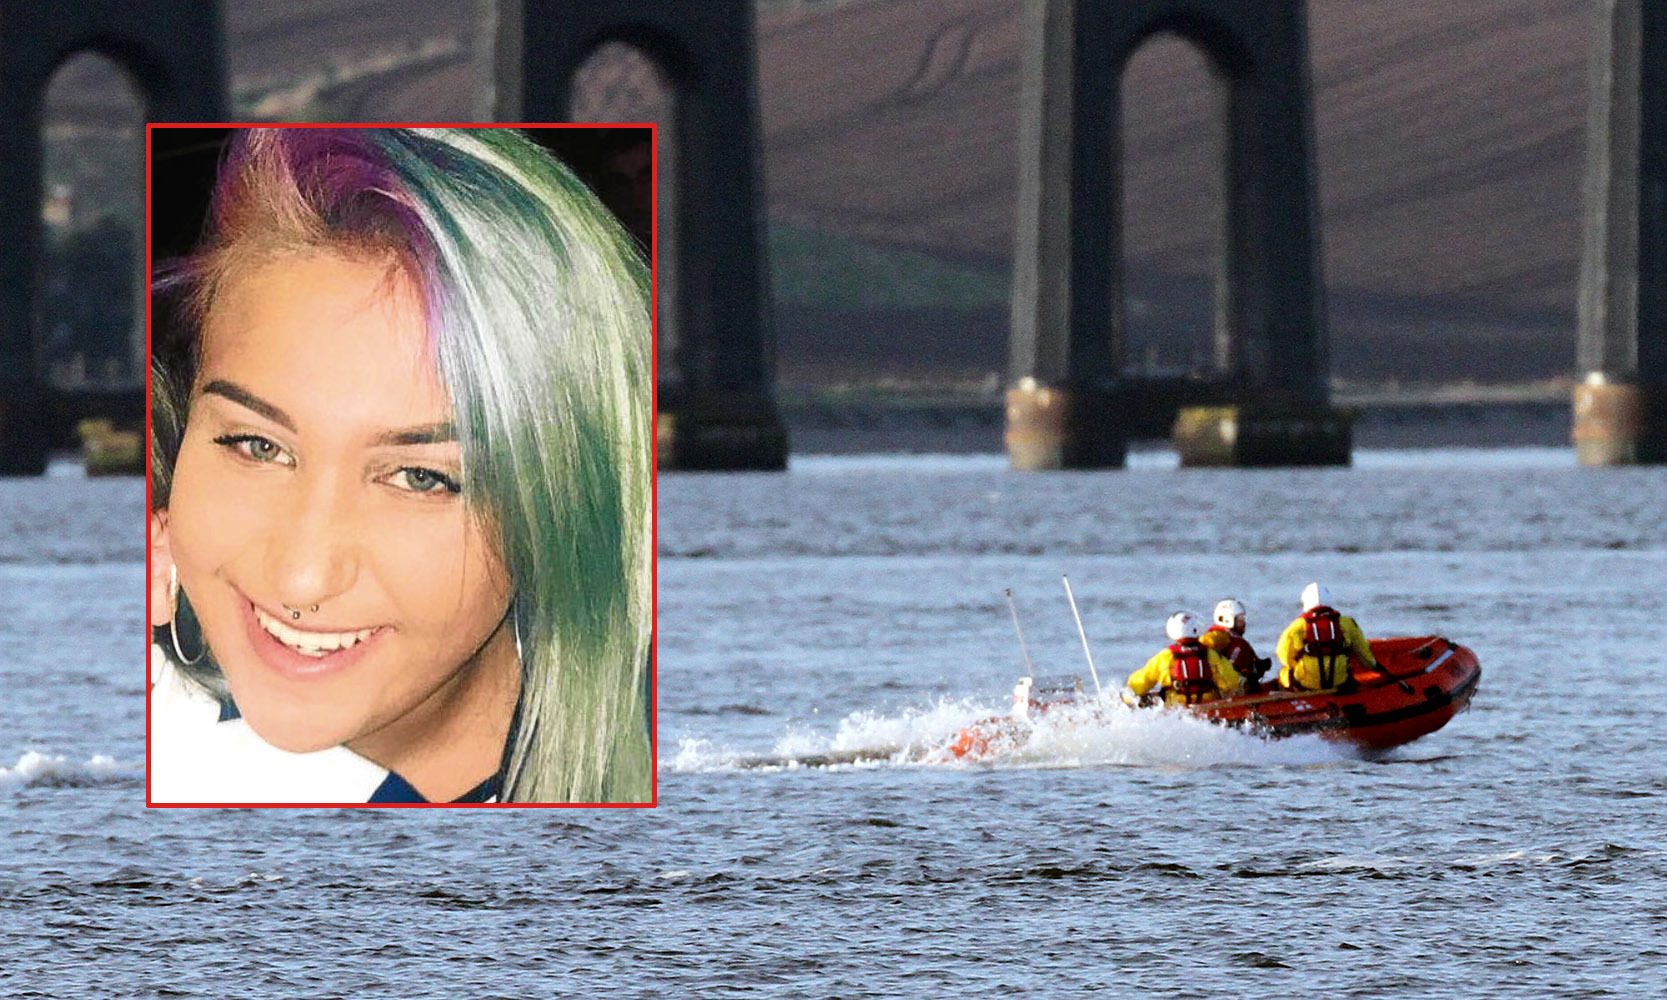 An RNLI lifeboat from Broughty Ferry searches the River Tay, close to the railway bridge, for Claudia (inset).